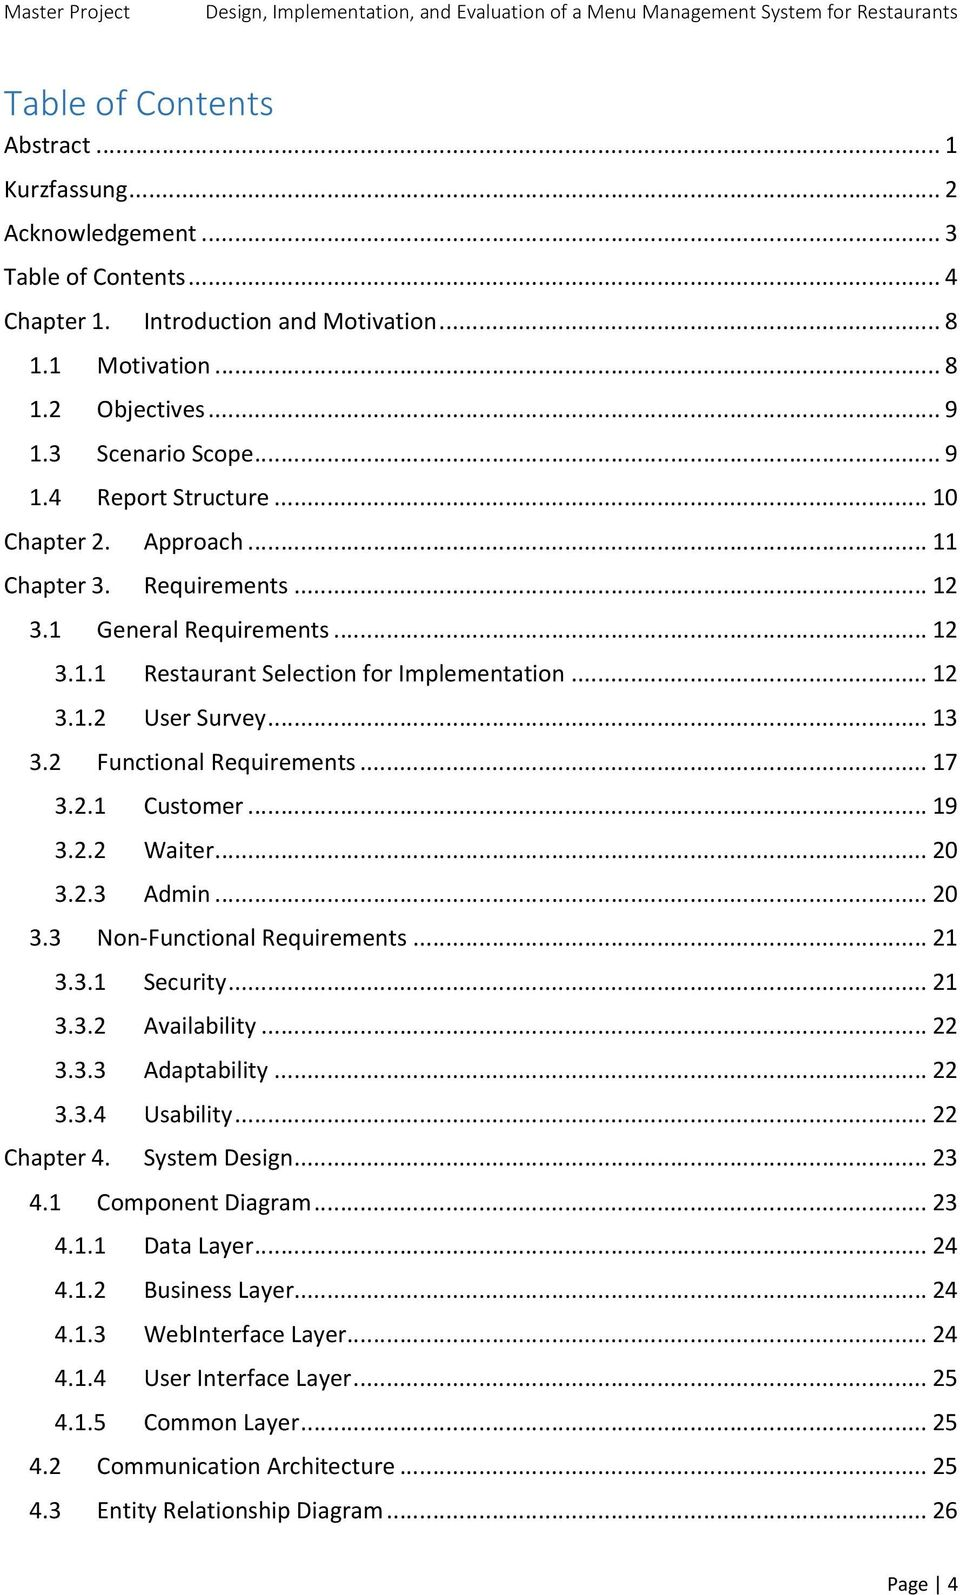 2 Functional Requirements... 17 3.2.1 Customer... 19 3.2.2 Waiter... 20 3.2.3 Admin... 20 3.3 Non Functional Requirements... 21 3.3.1 Security... 21 3.3.2 Availability... 22 3.3.3 Adaptability... 22 3.3.4 Usability.